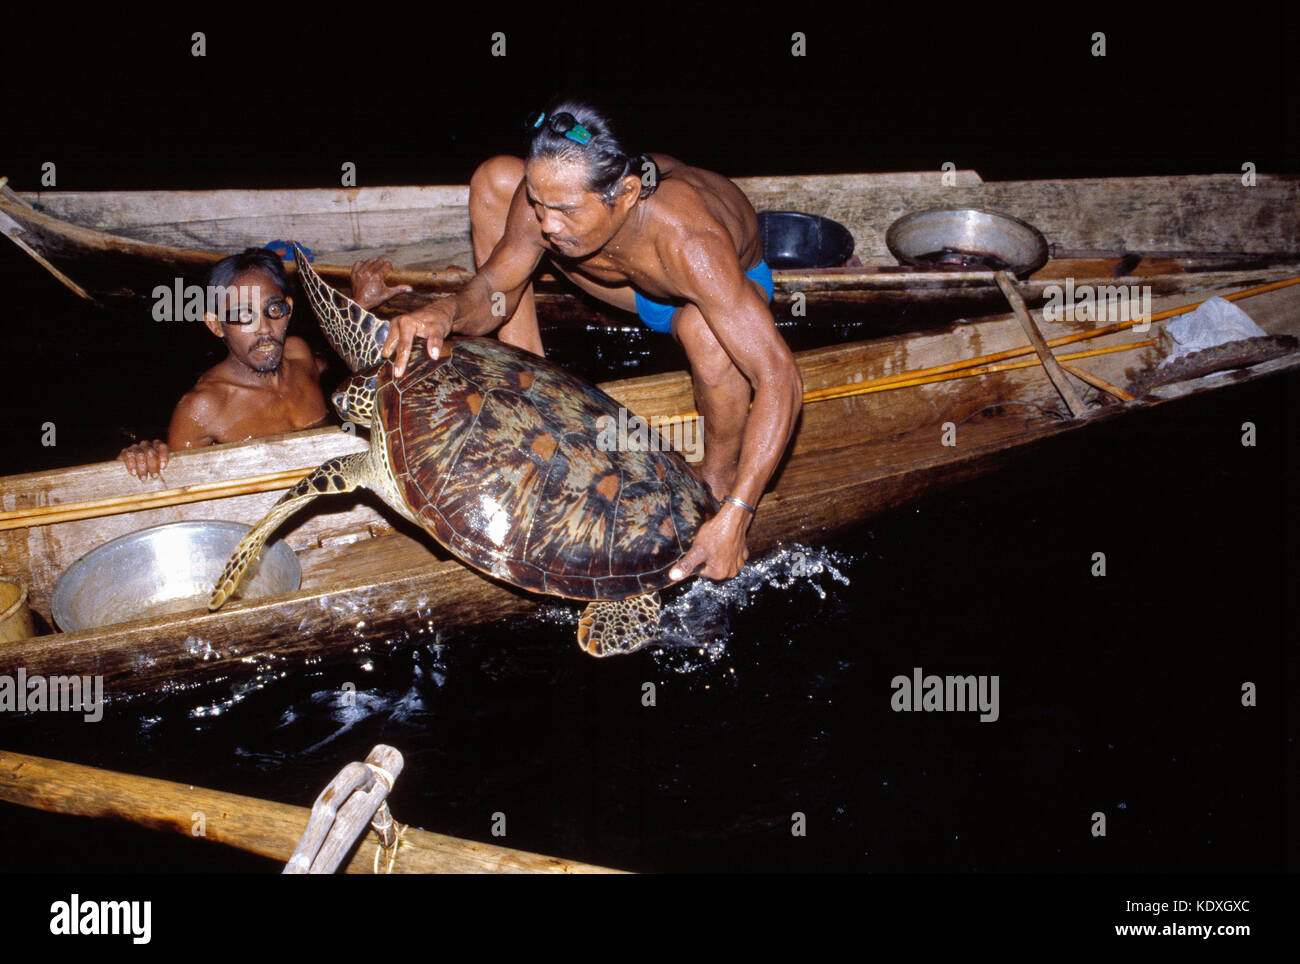 Indonesia. Sulawesi. Sama-Bajau people. Turtle hunters capturing a turtle. - Stock Image